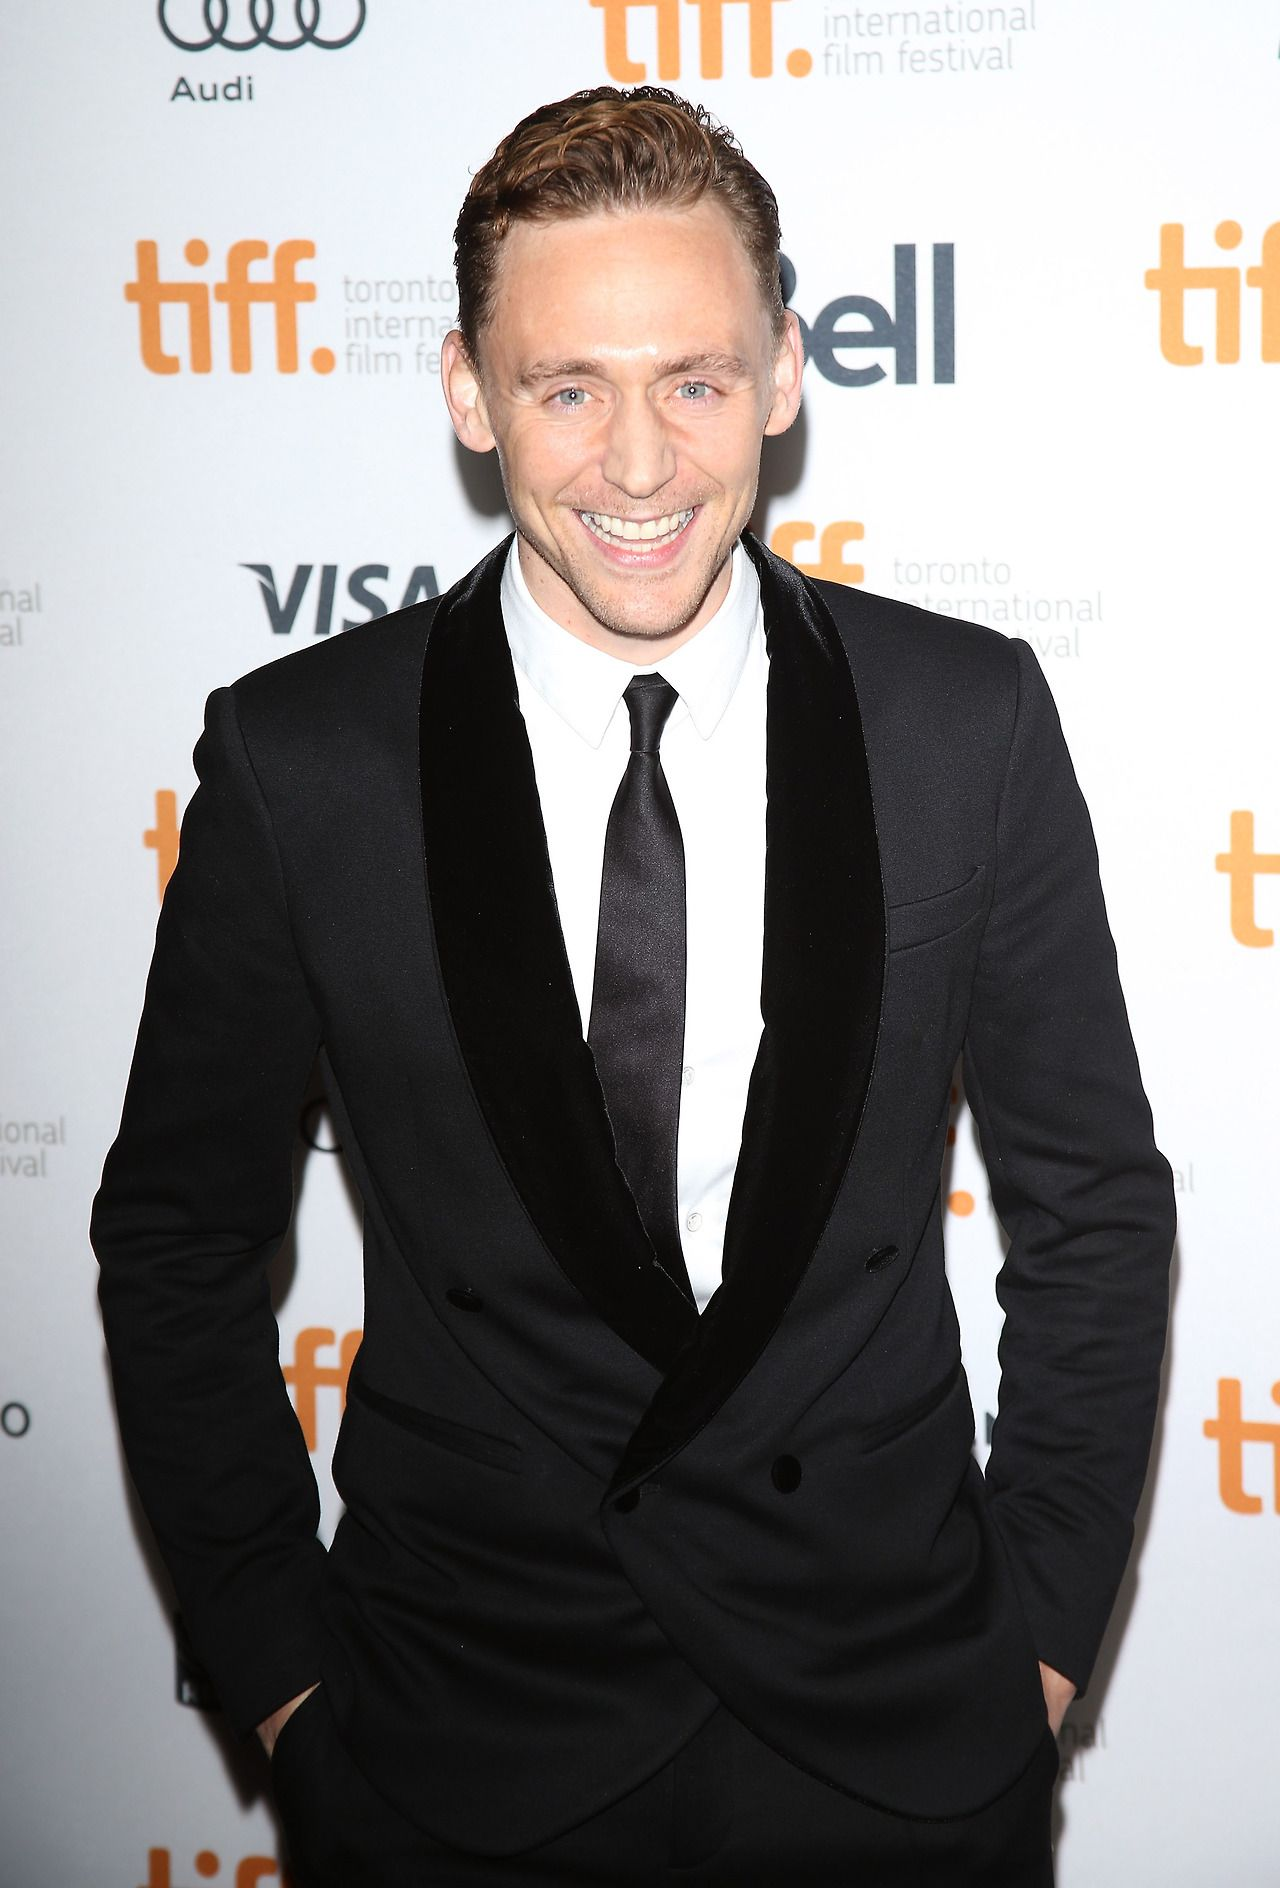 Tom Hiddleston attends the 'Only Lovers Left Alive' Premiere at the Ryerson Theatre during the 2013 Toronto International Film Festival on September 5, 2013 [HQ]